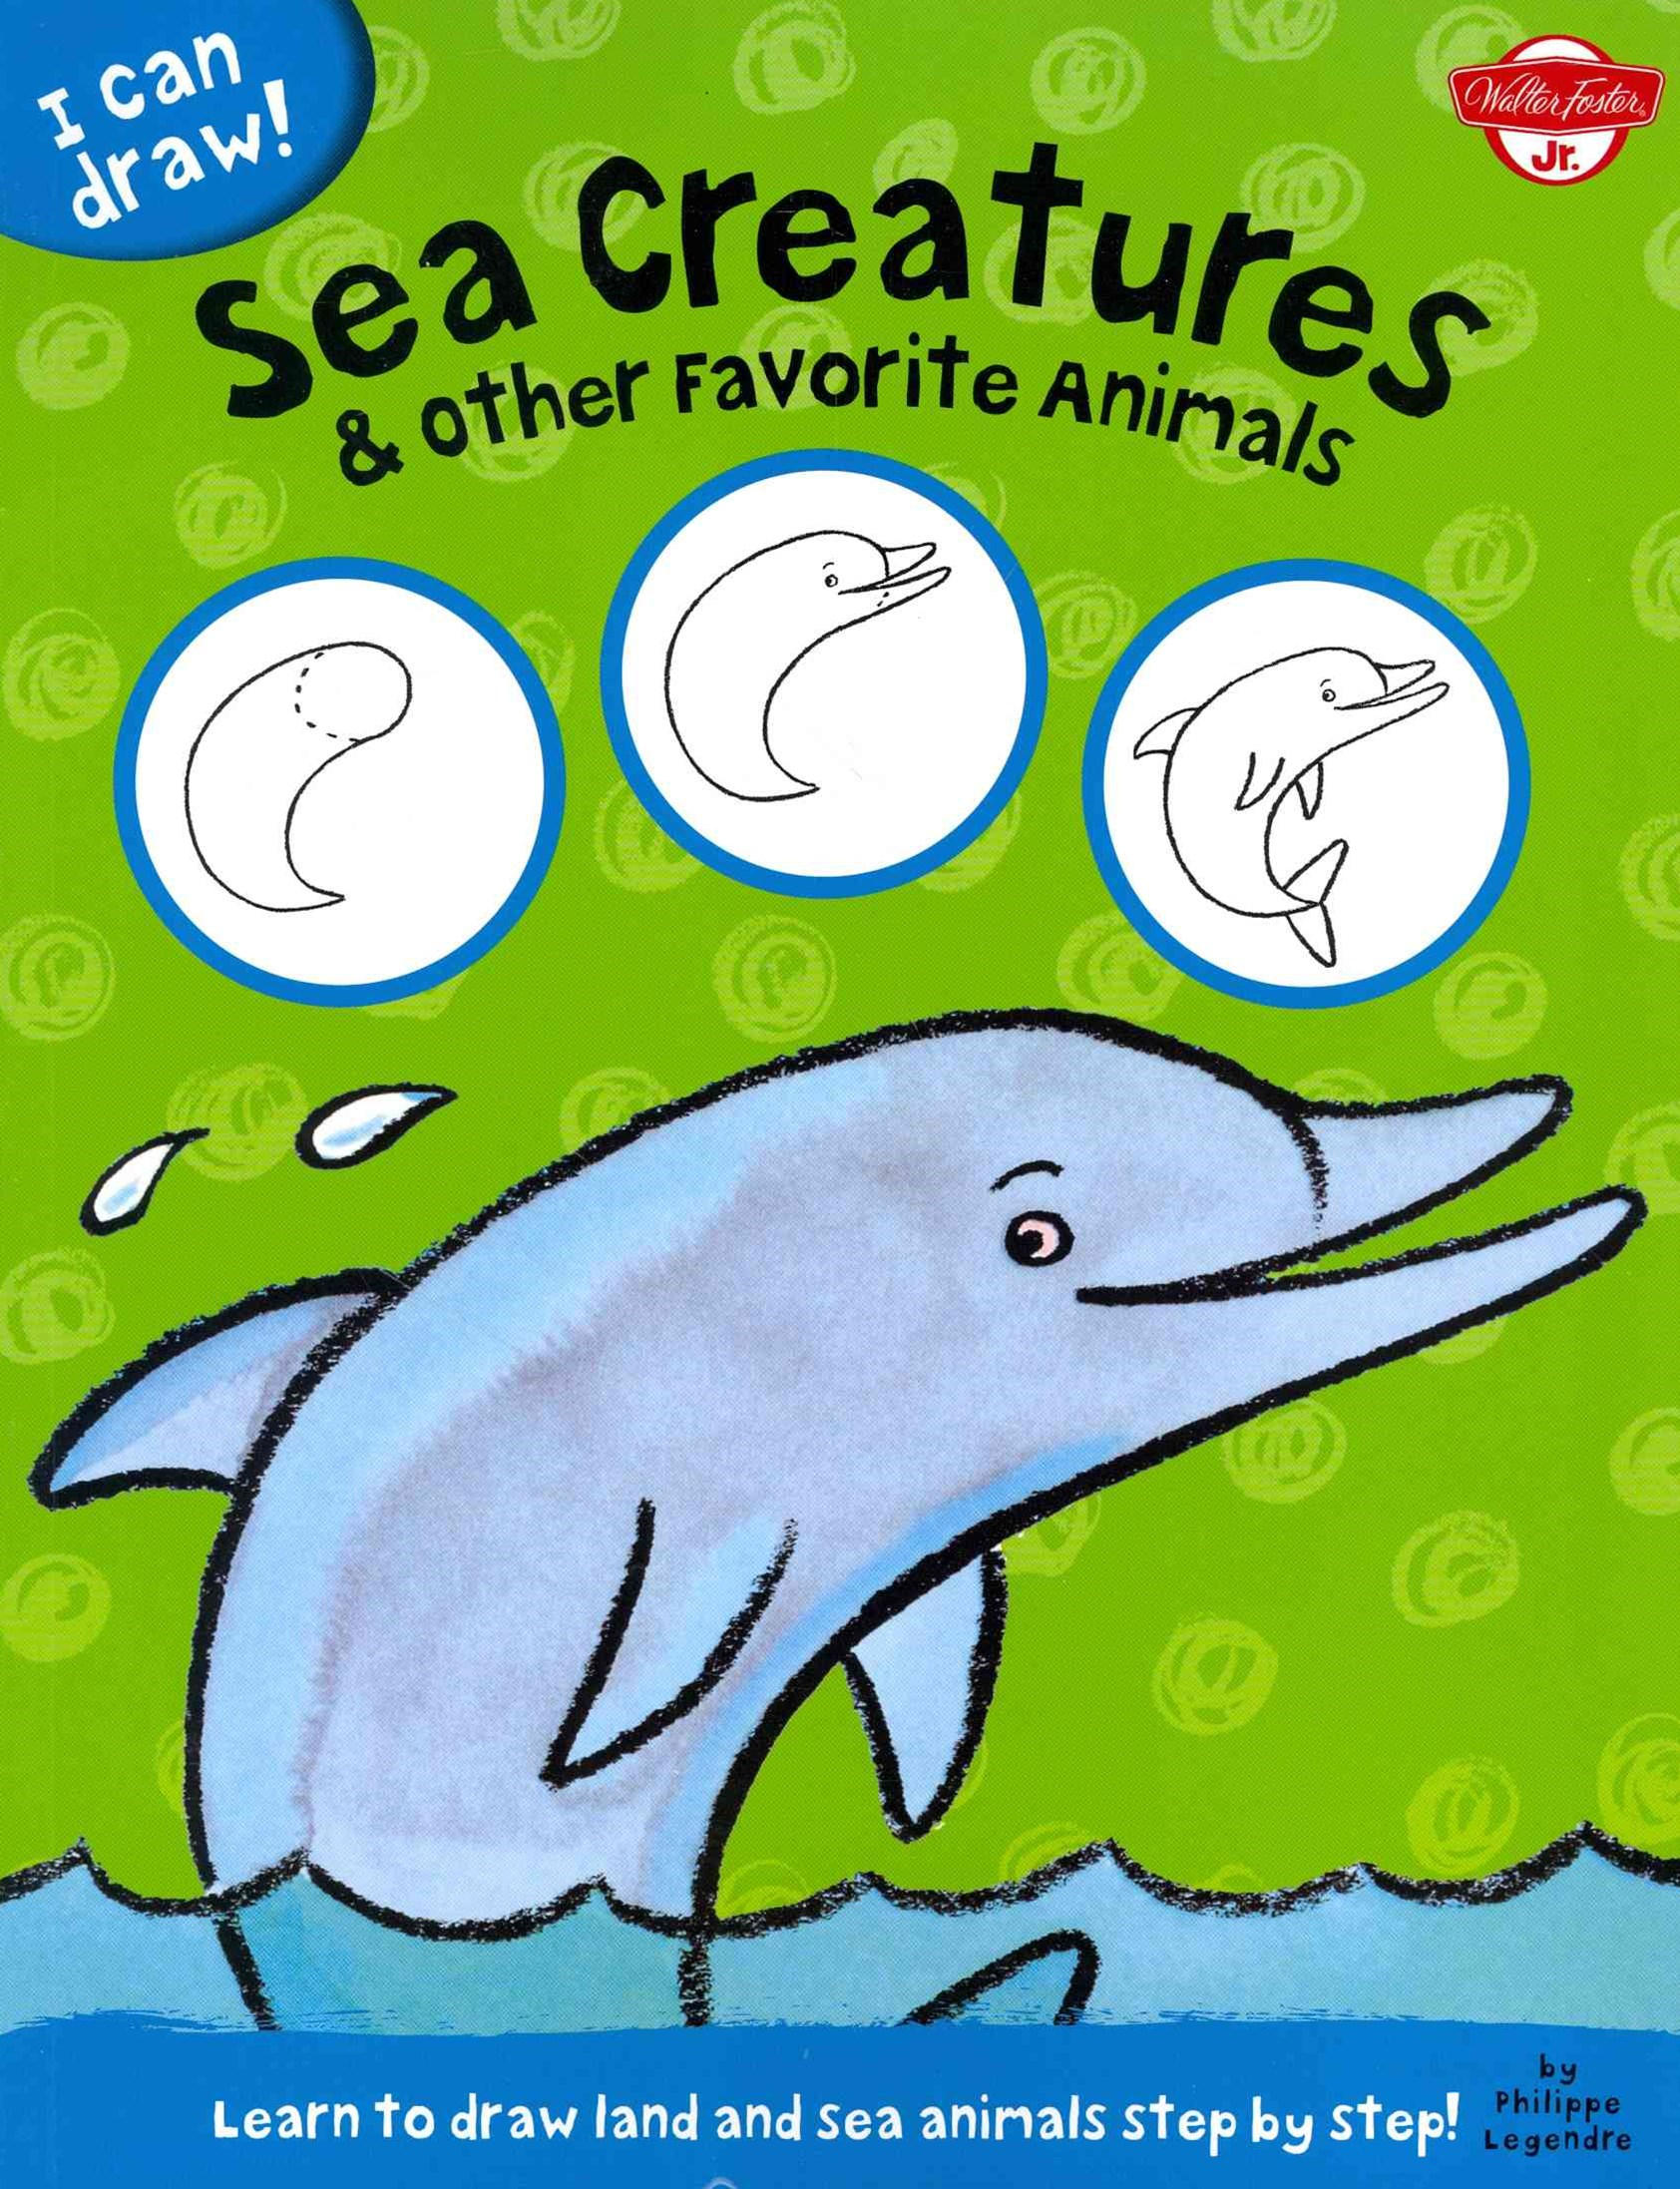 Sea Creatures & Other Favorite Animals